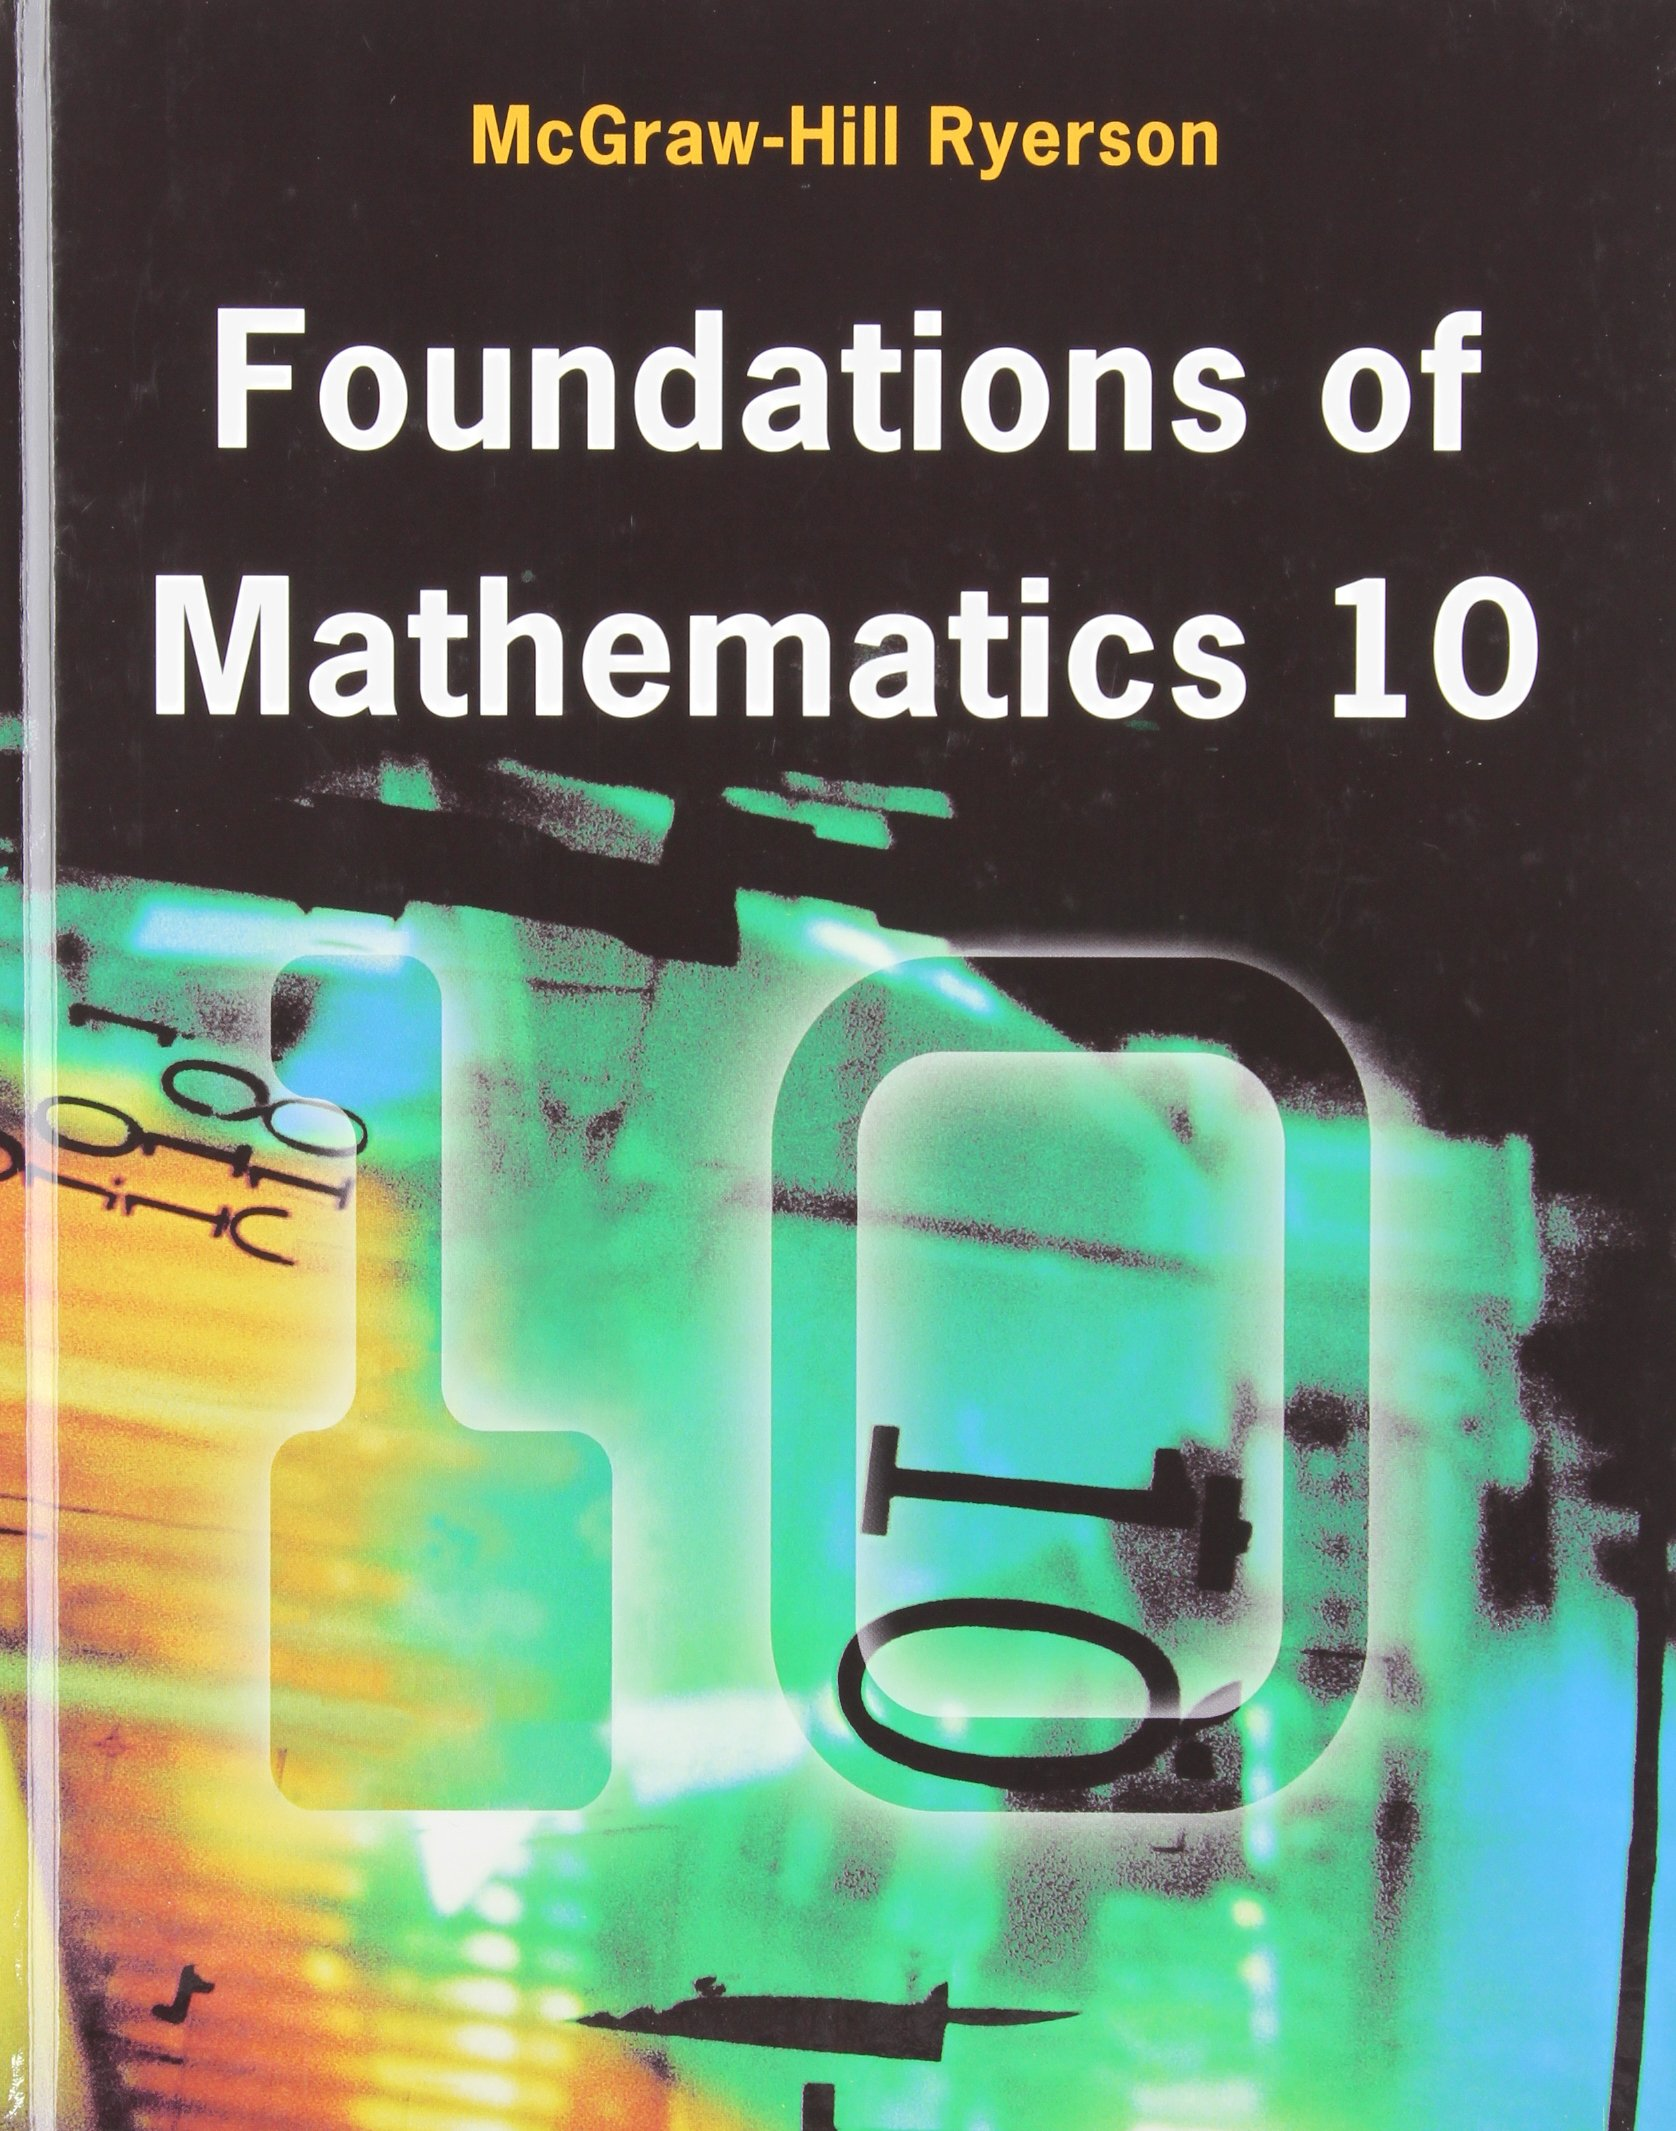 mcgraw hill ryerson foundations of mathematics 10